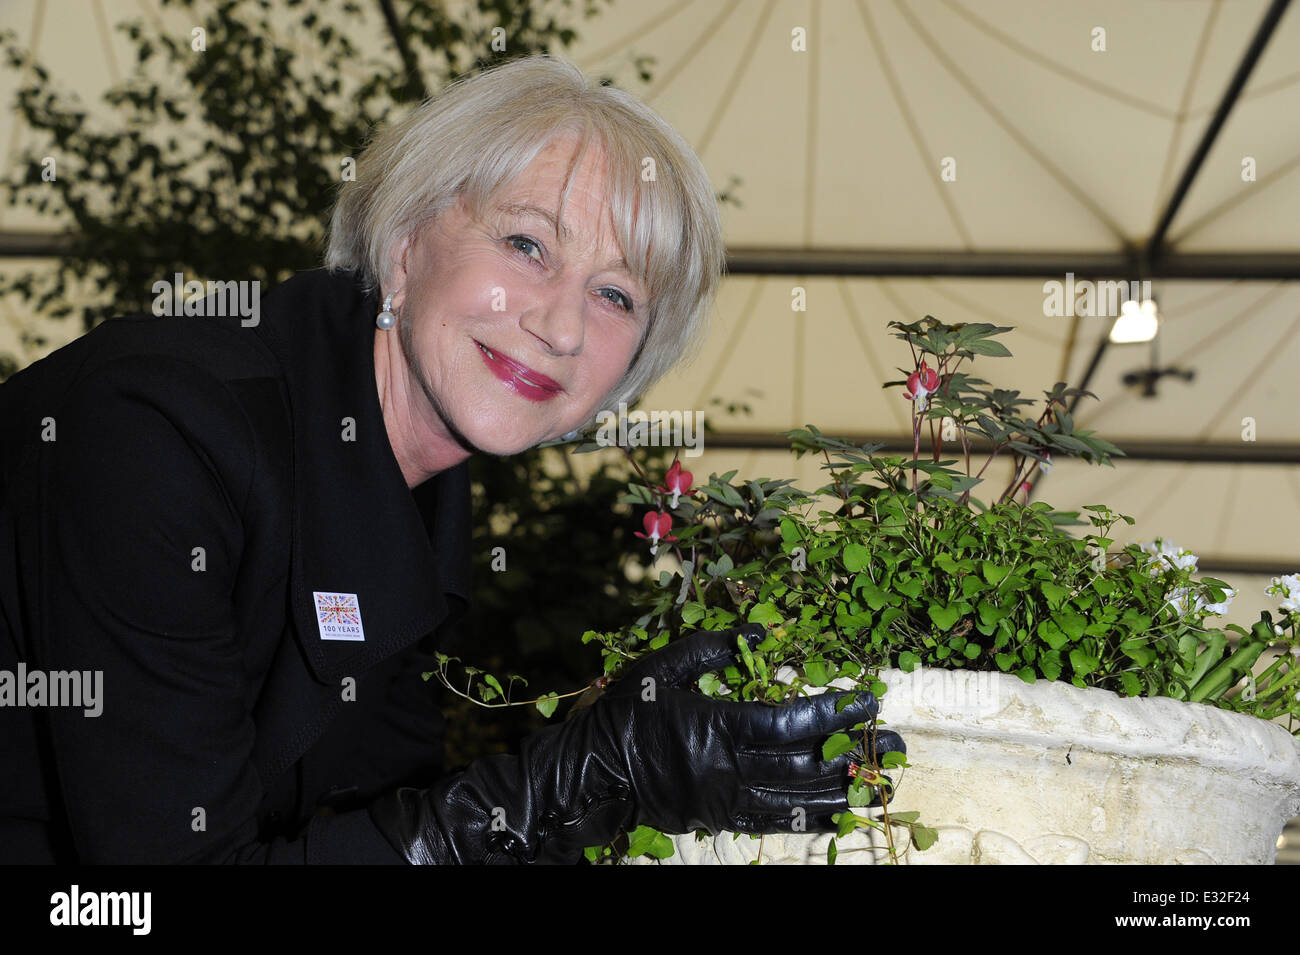 dd1276958b4 RHS Chelsea Flower Show 2013 - VIP and press preview day Featuring  Helen  Mirren Where